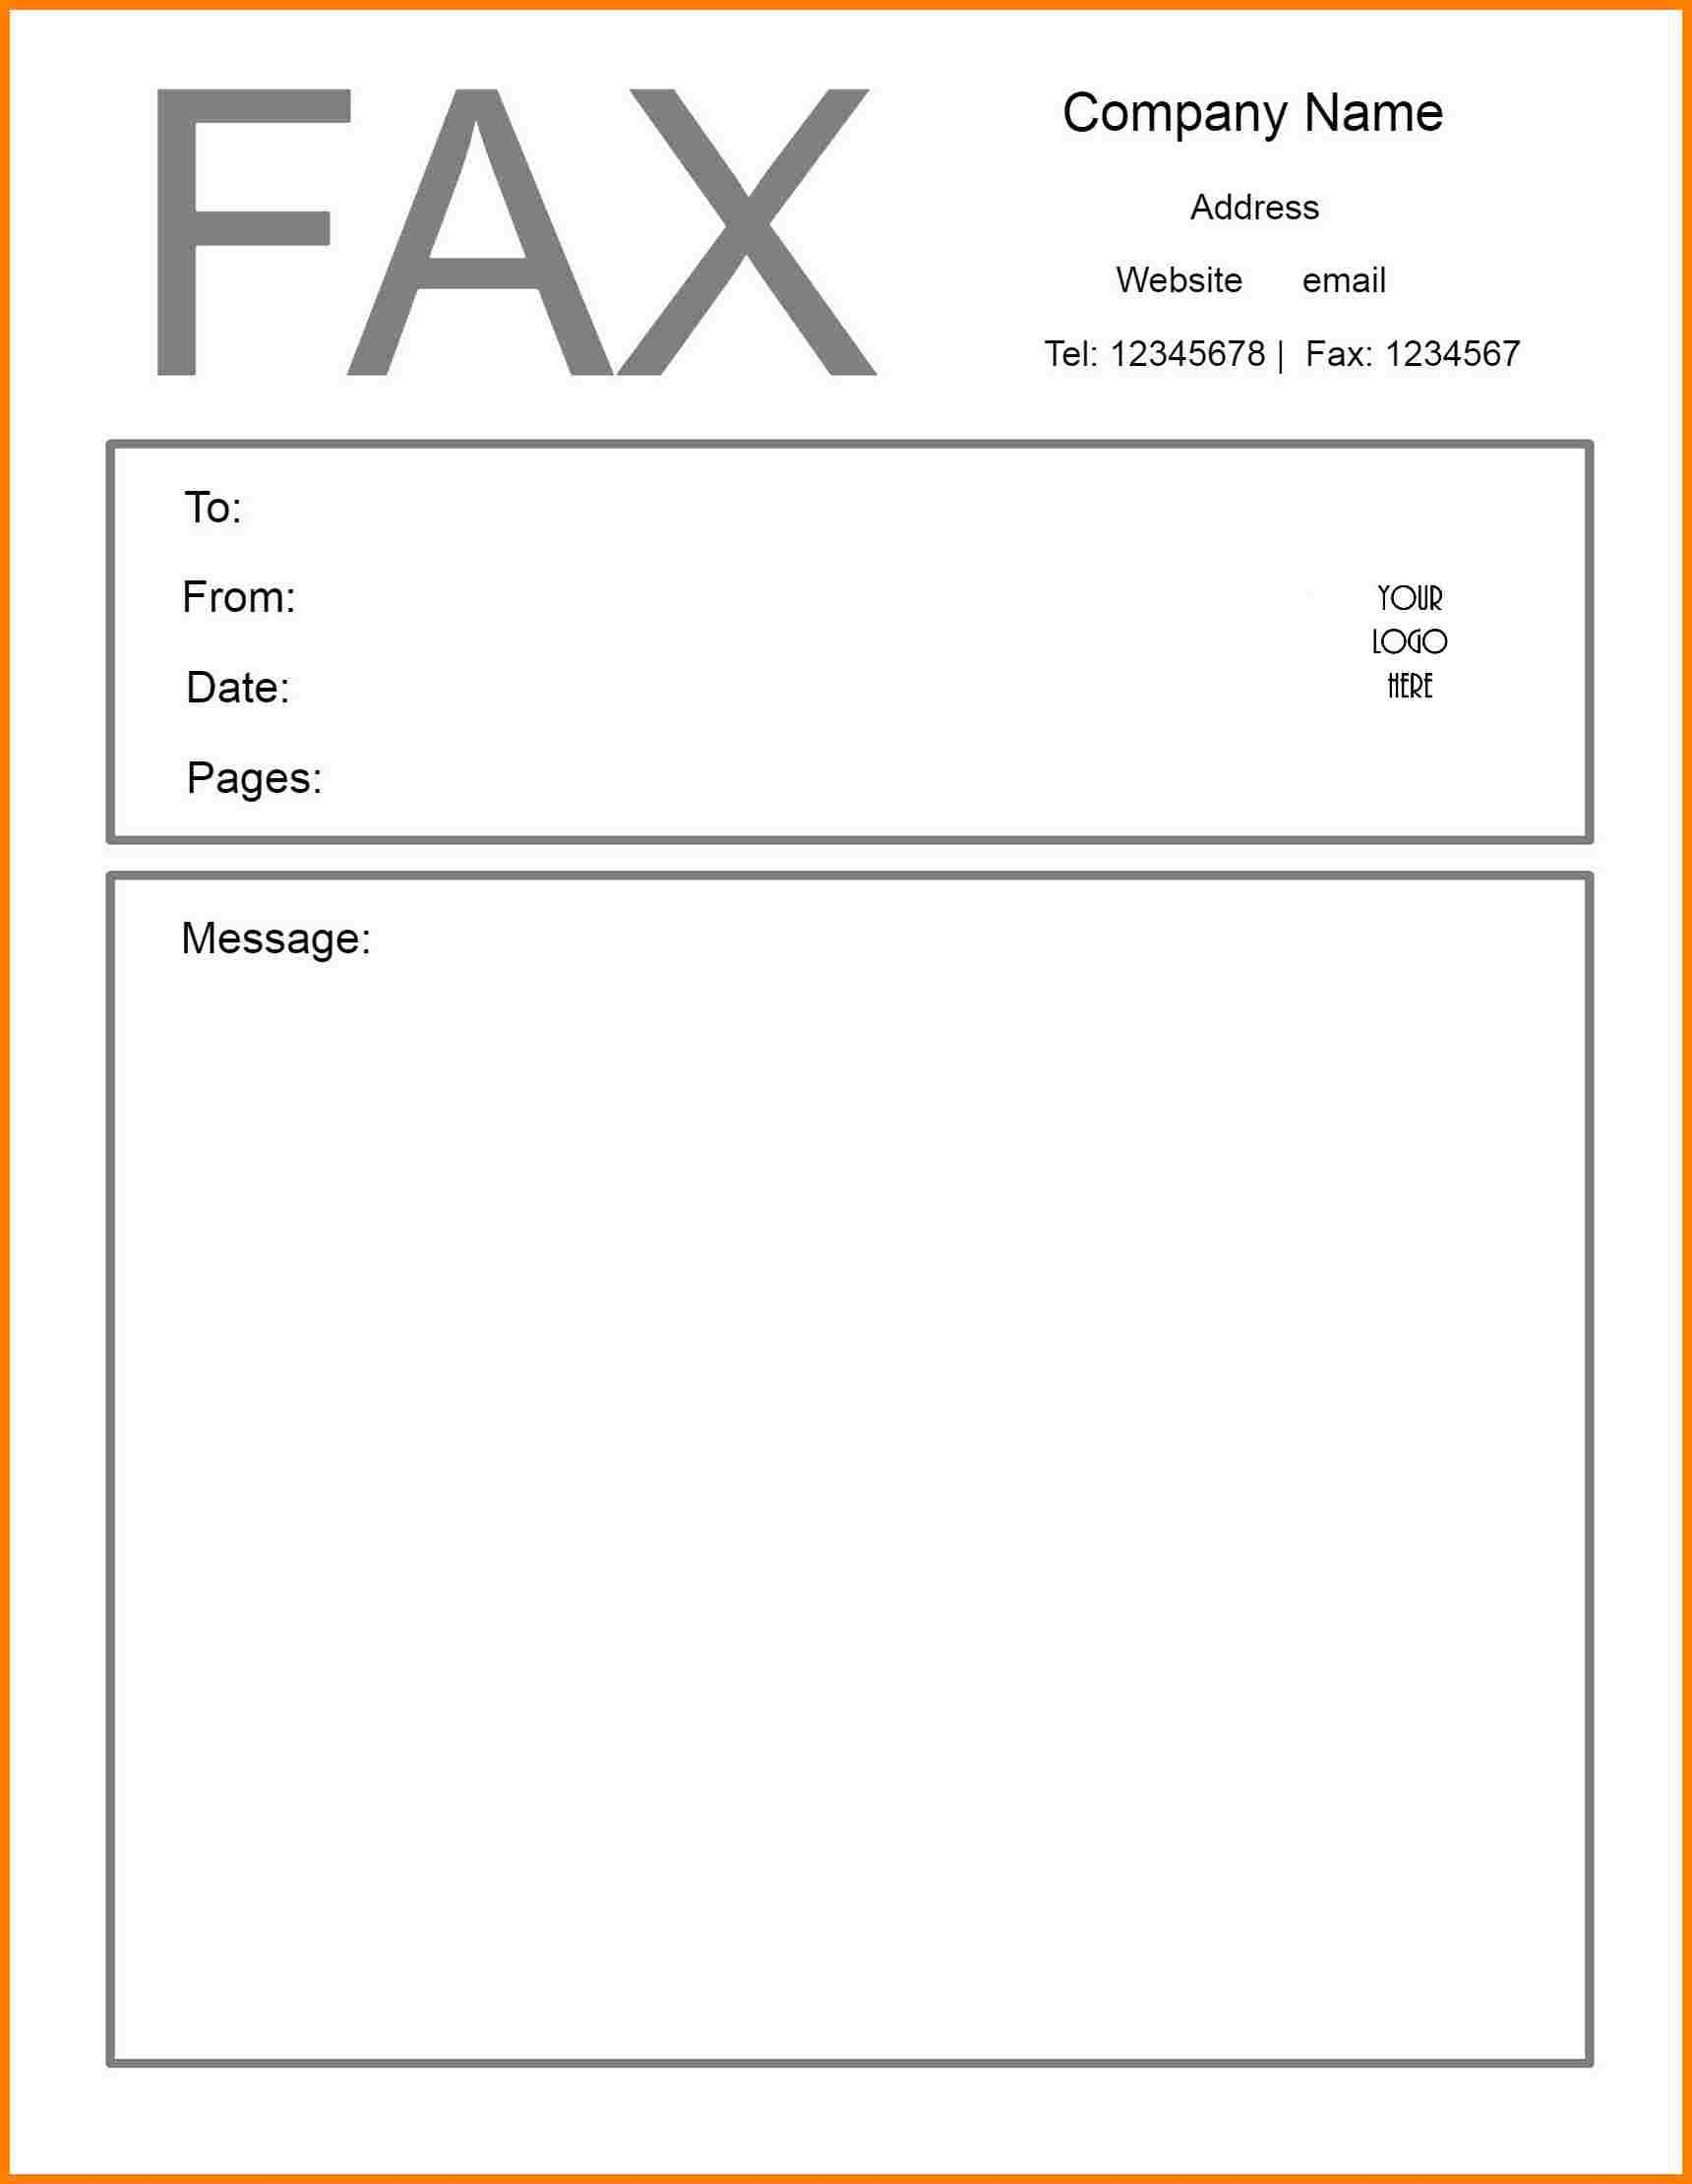 Free Printable Fax Cover Letter Template - Wethepeopletshirts - Free Printable Cover Letter For Fax